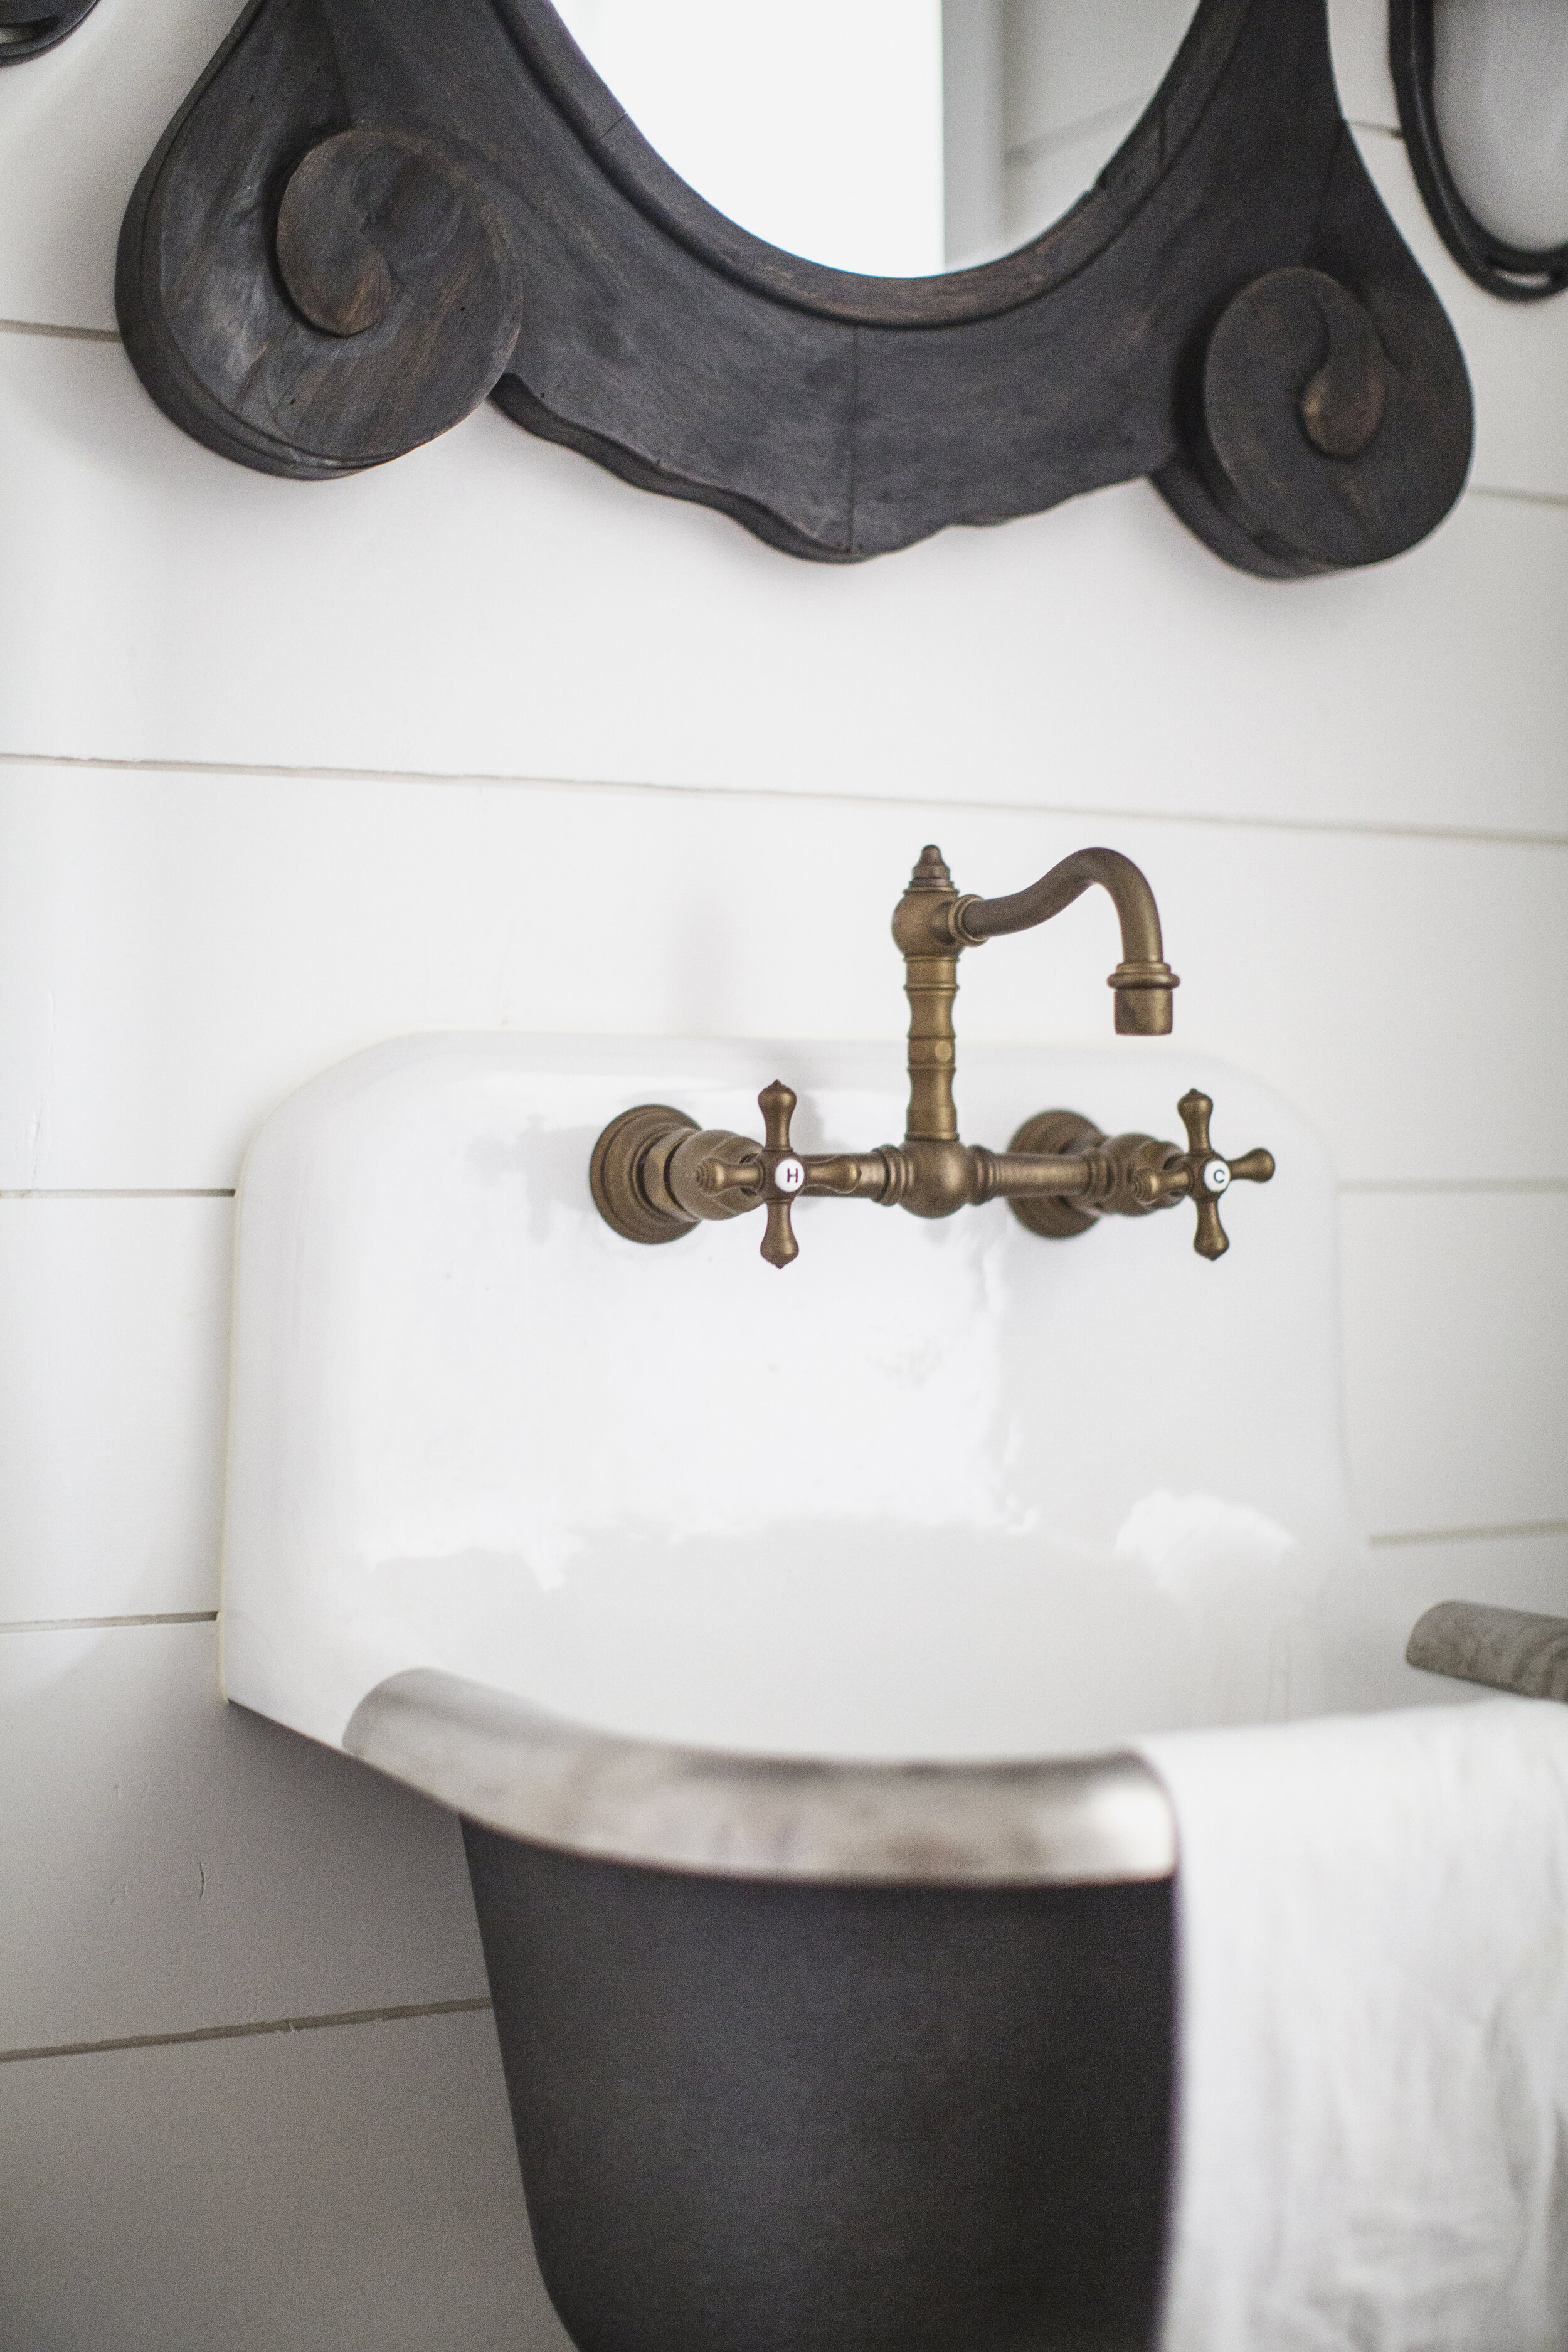 antique and vintage inspired sinks and